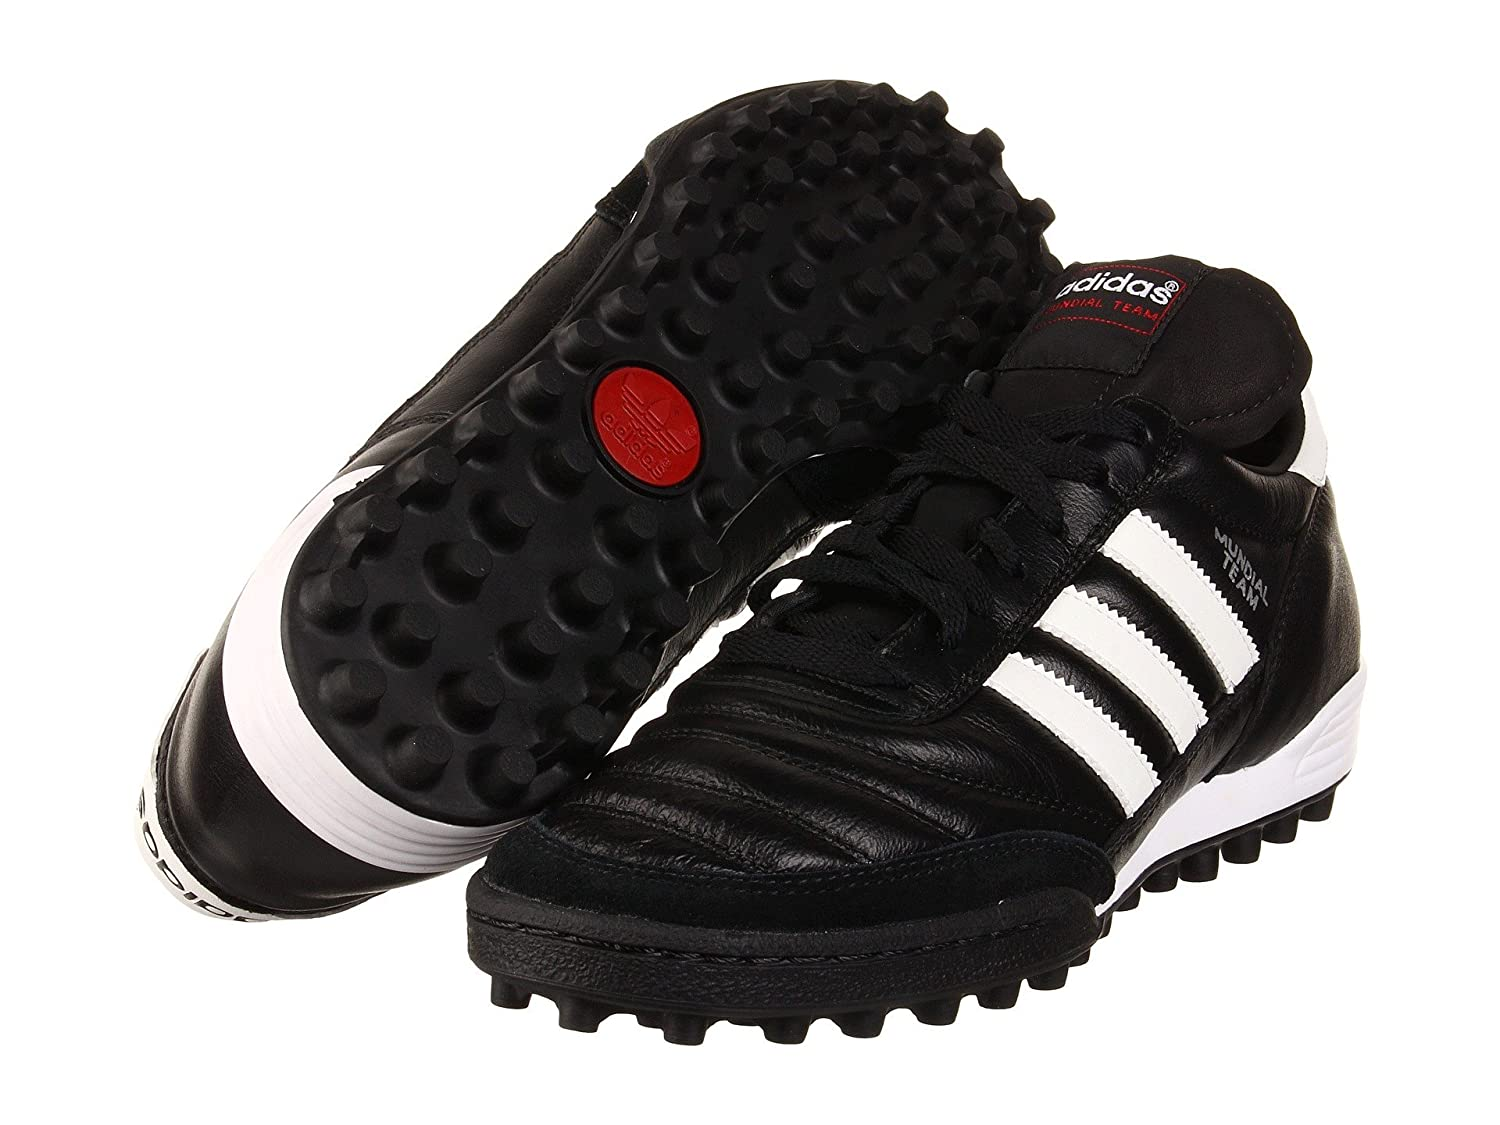 (アディダス) adidas メンズサッカーシューズ靴 Mundial Team Black/White Men's 8, Women's 9 (26cm) Medium B07BQK9PWZ